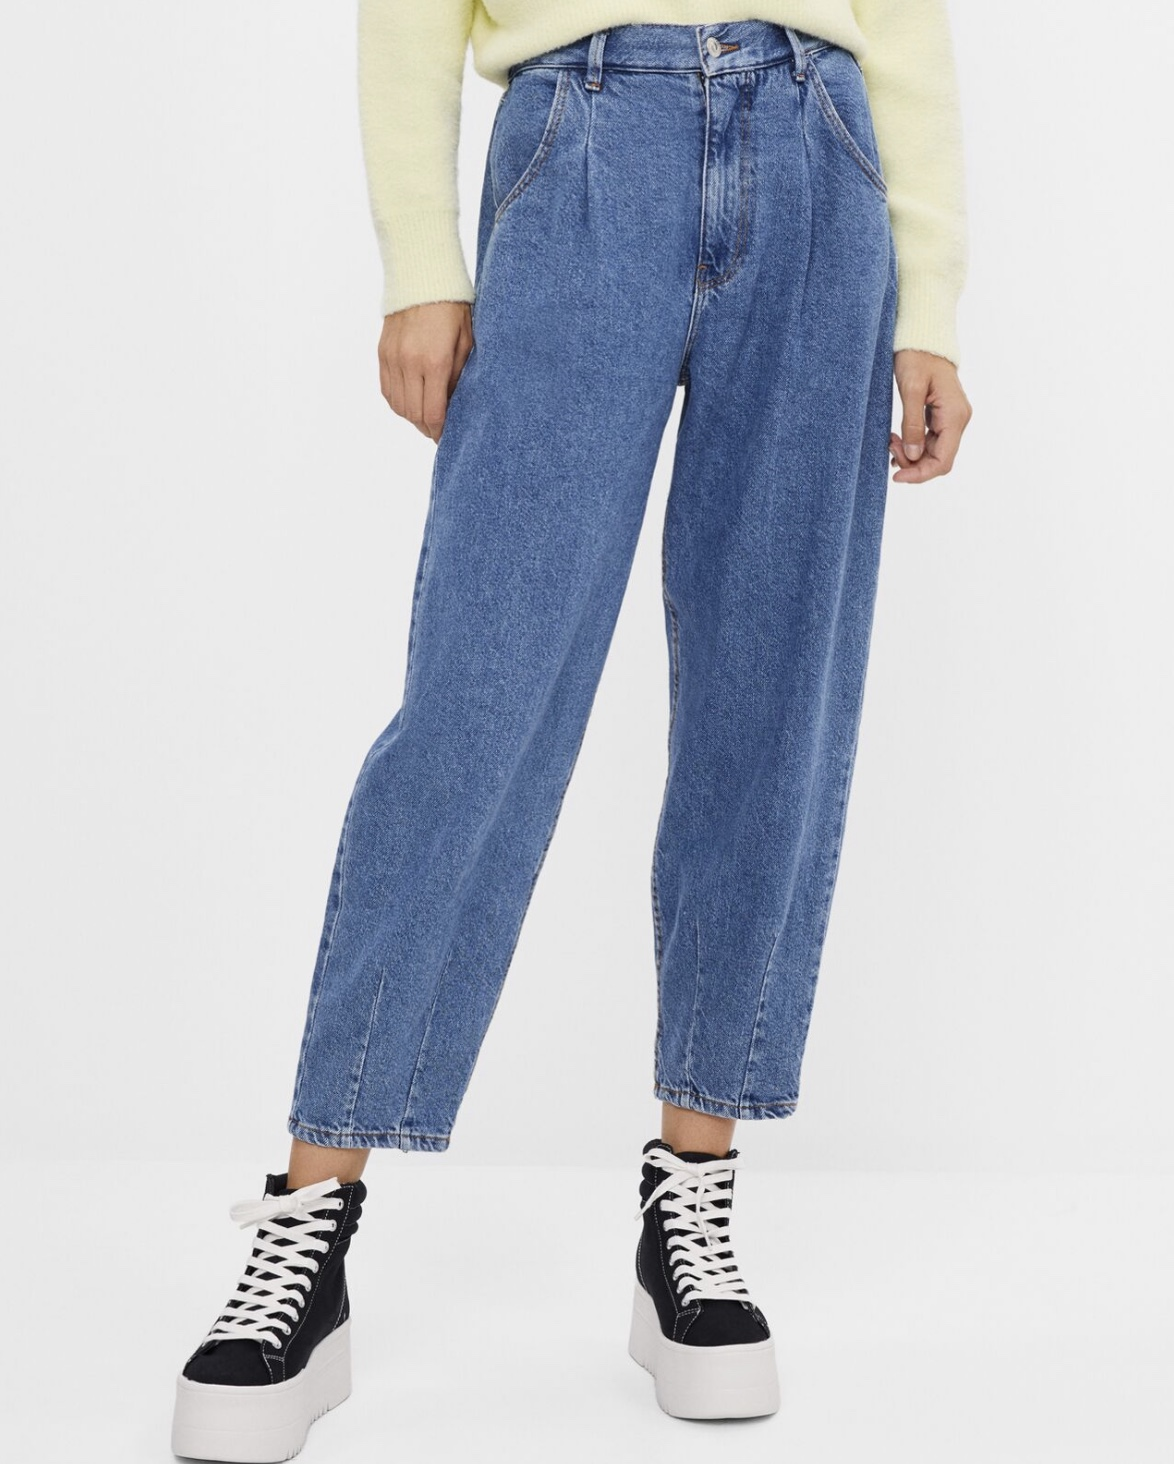 jeans autunno 2020